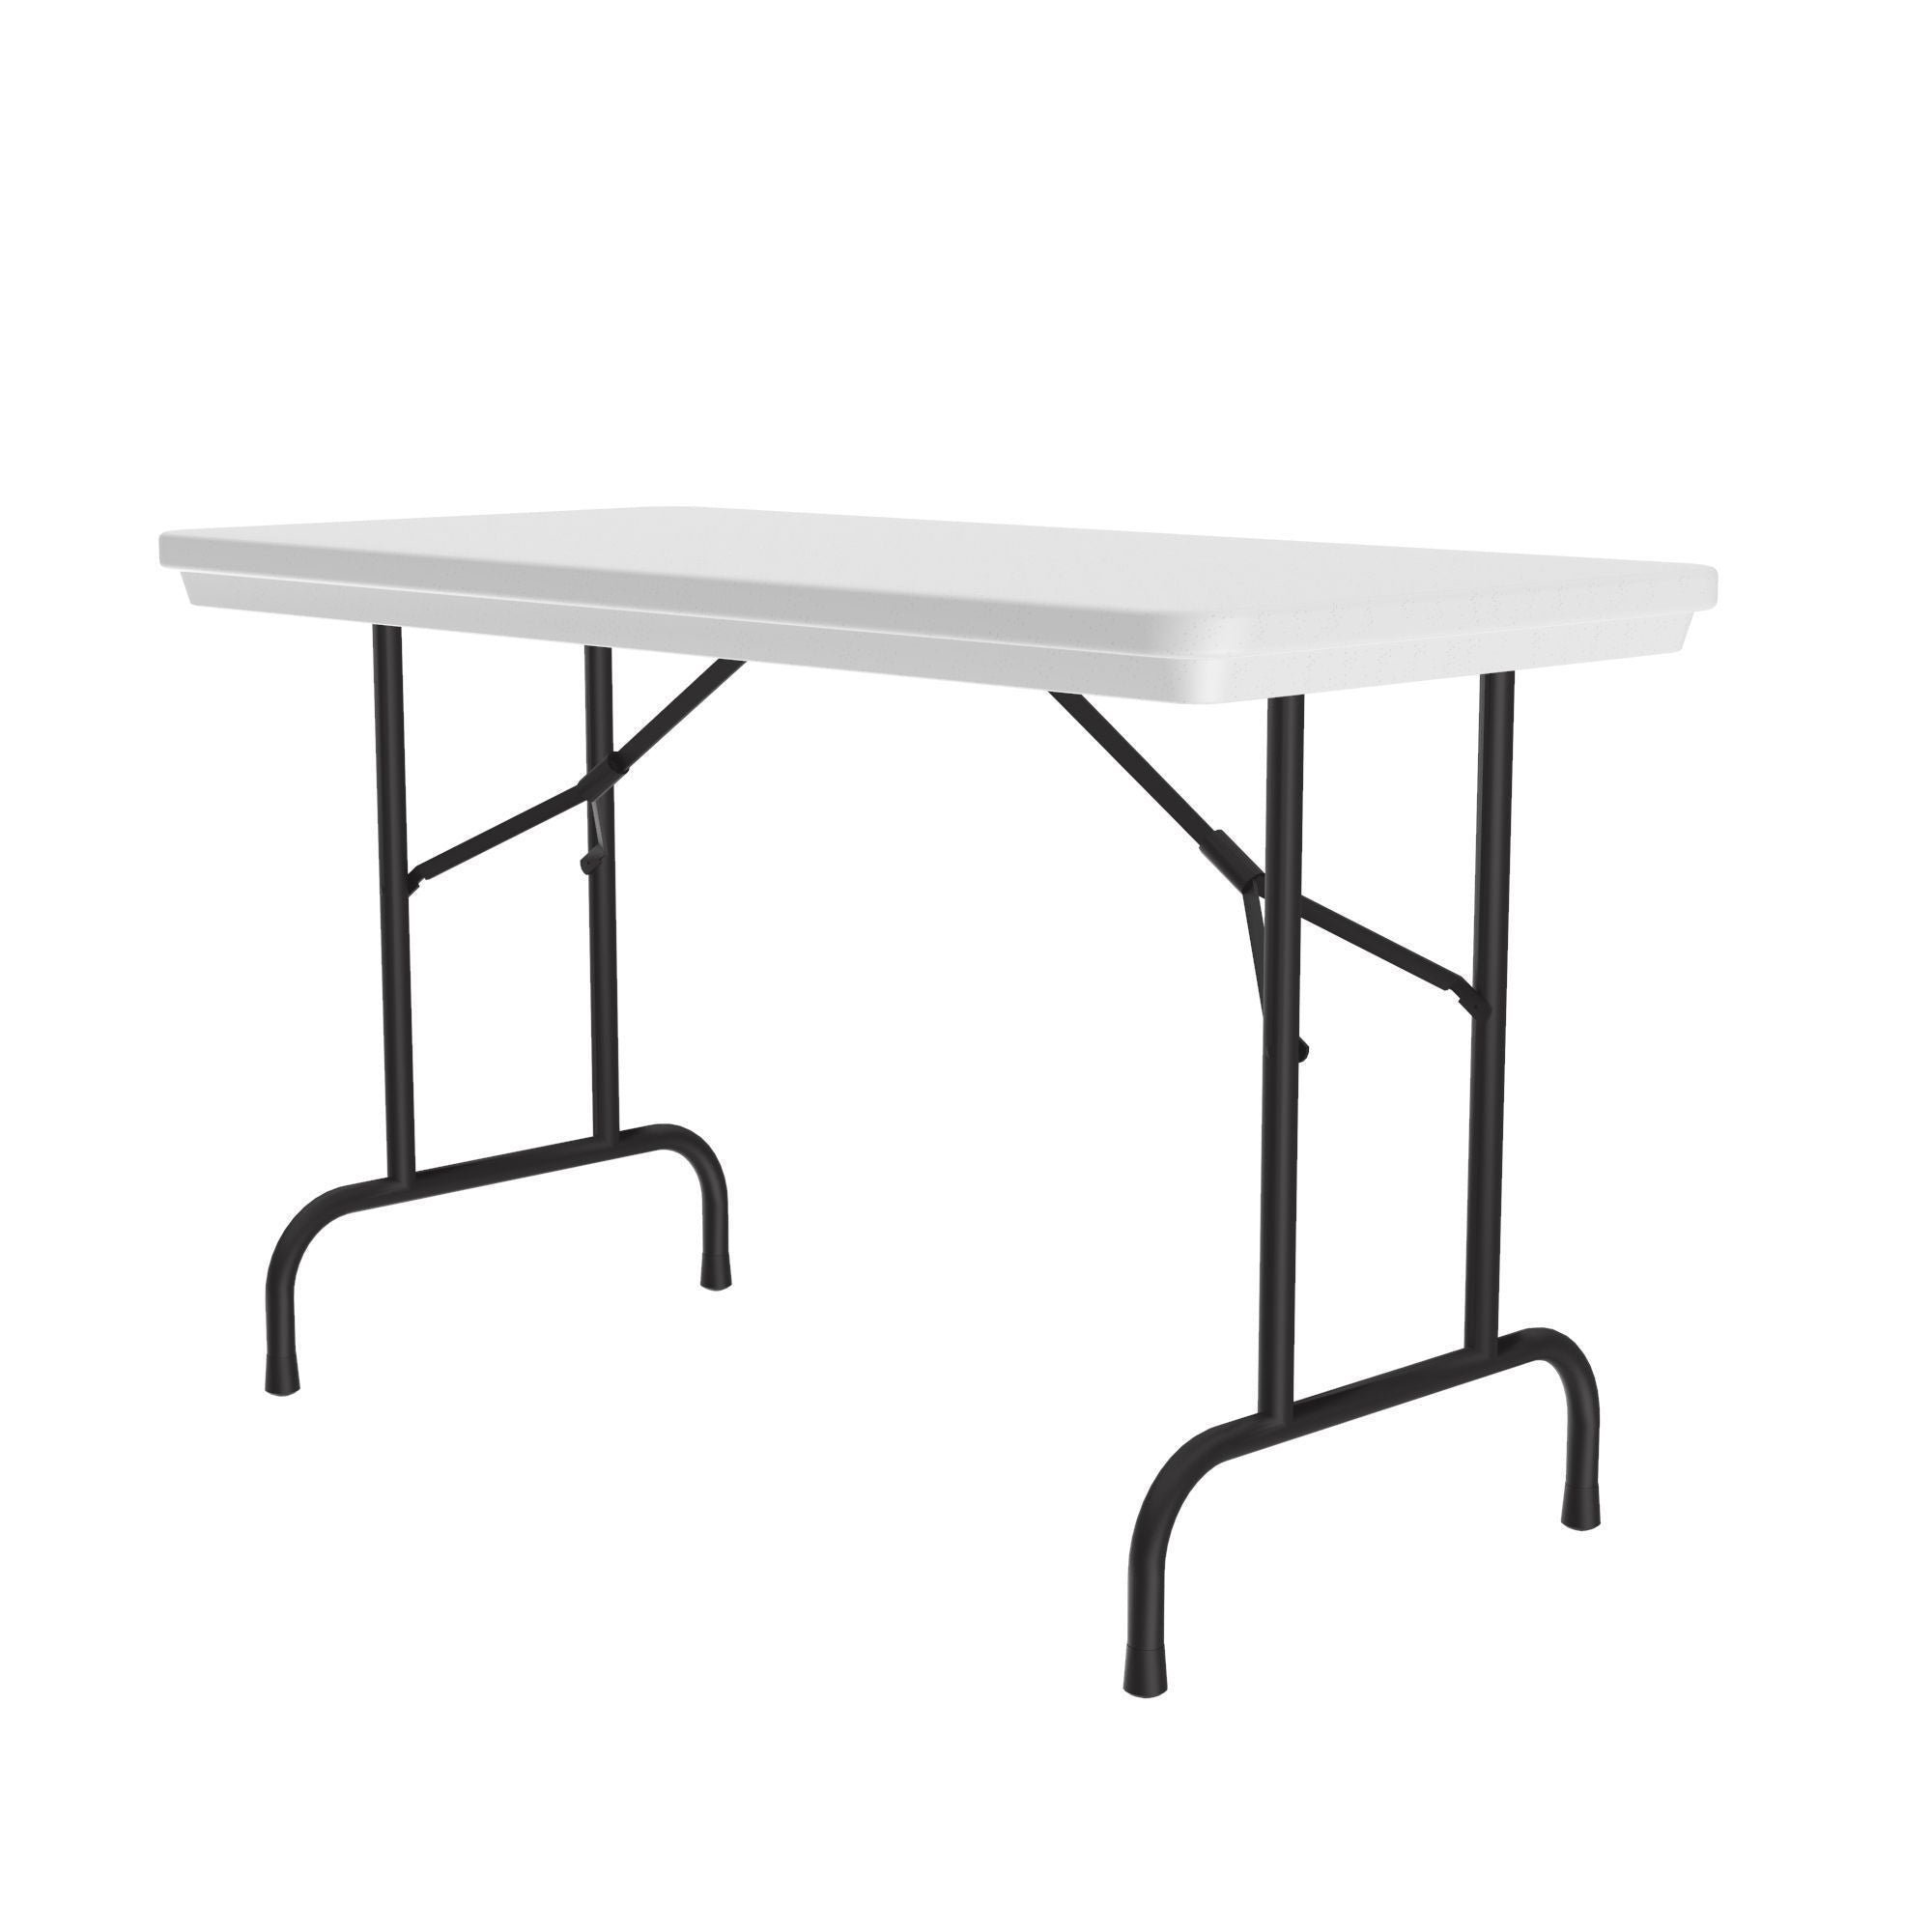 "Heavy Duty Commercial Use Blow Molded Folding Table, Standard Colors, Standard 29"" Fixed Height, 24 x 48"